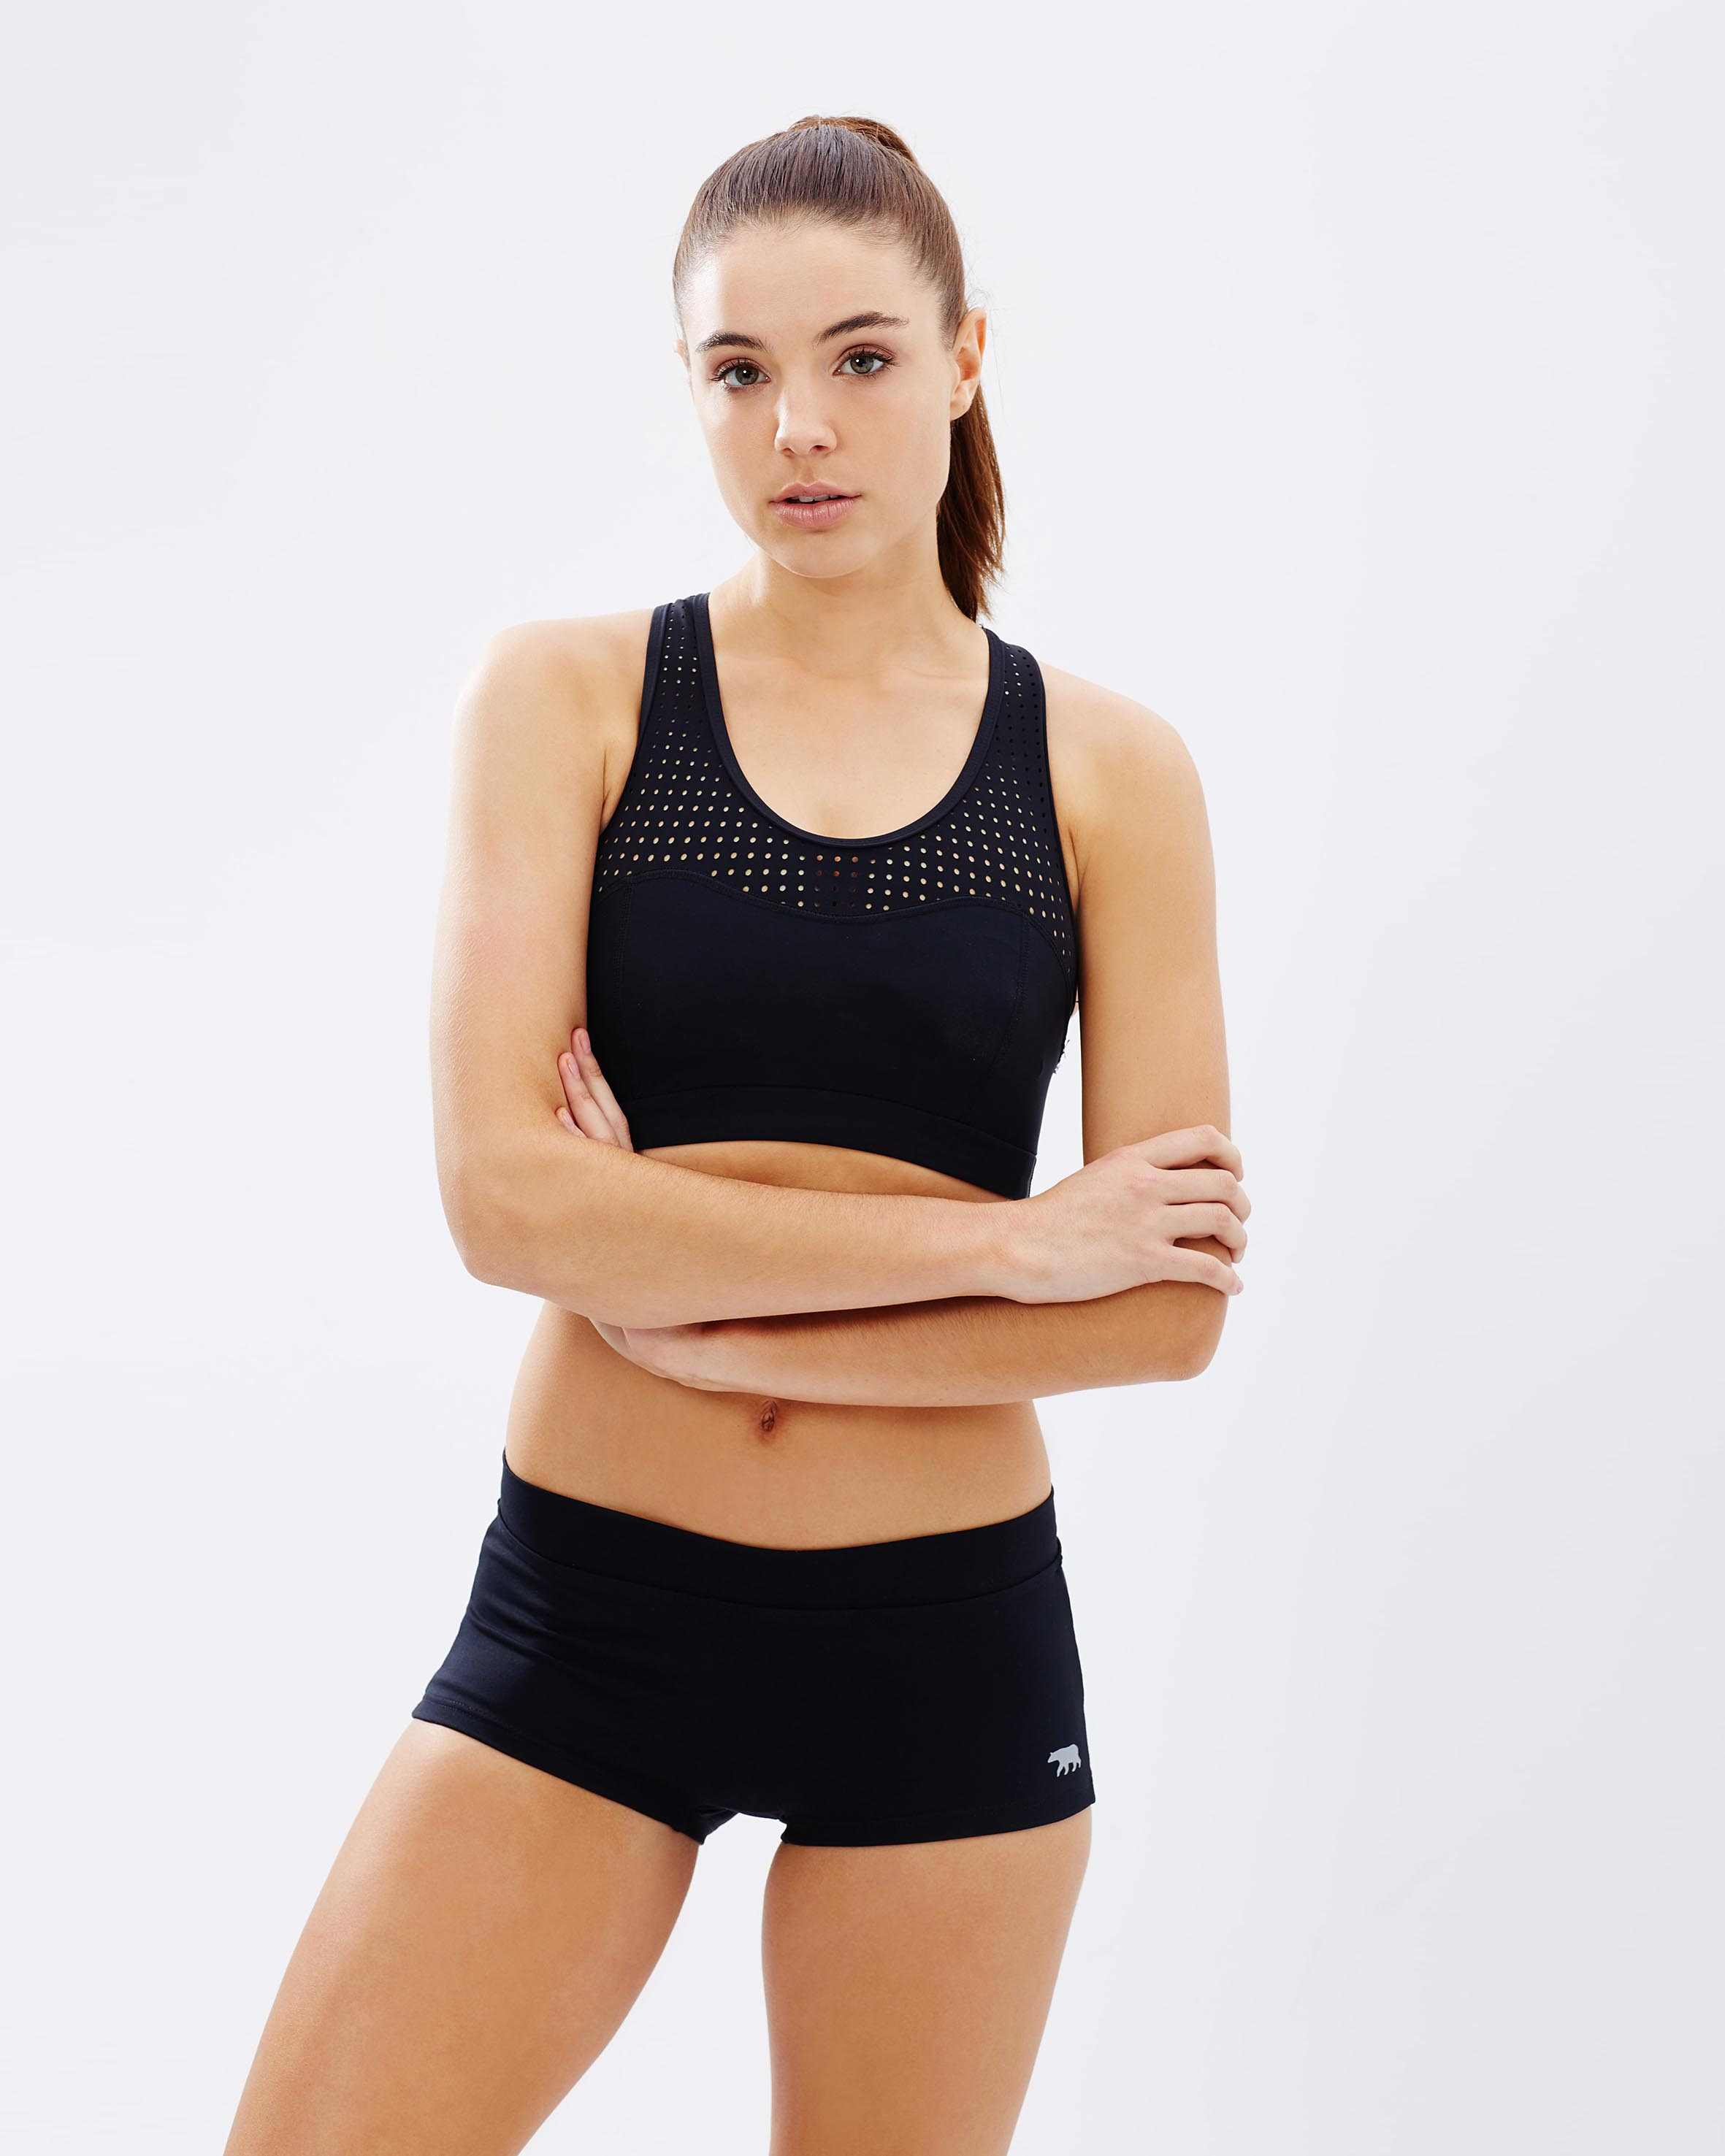 Wear Underwear While Exercising Running Bare